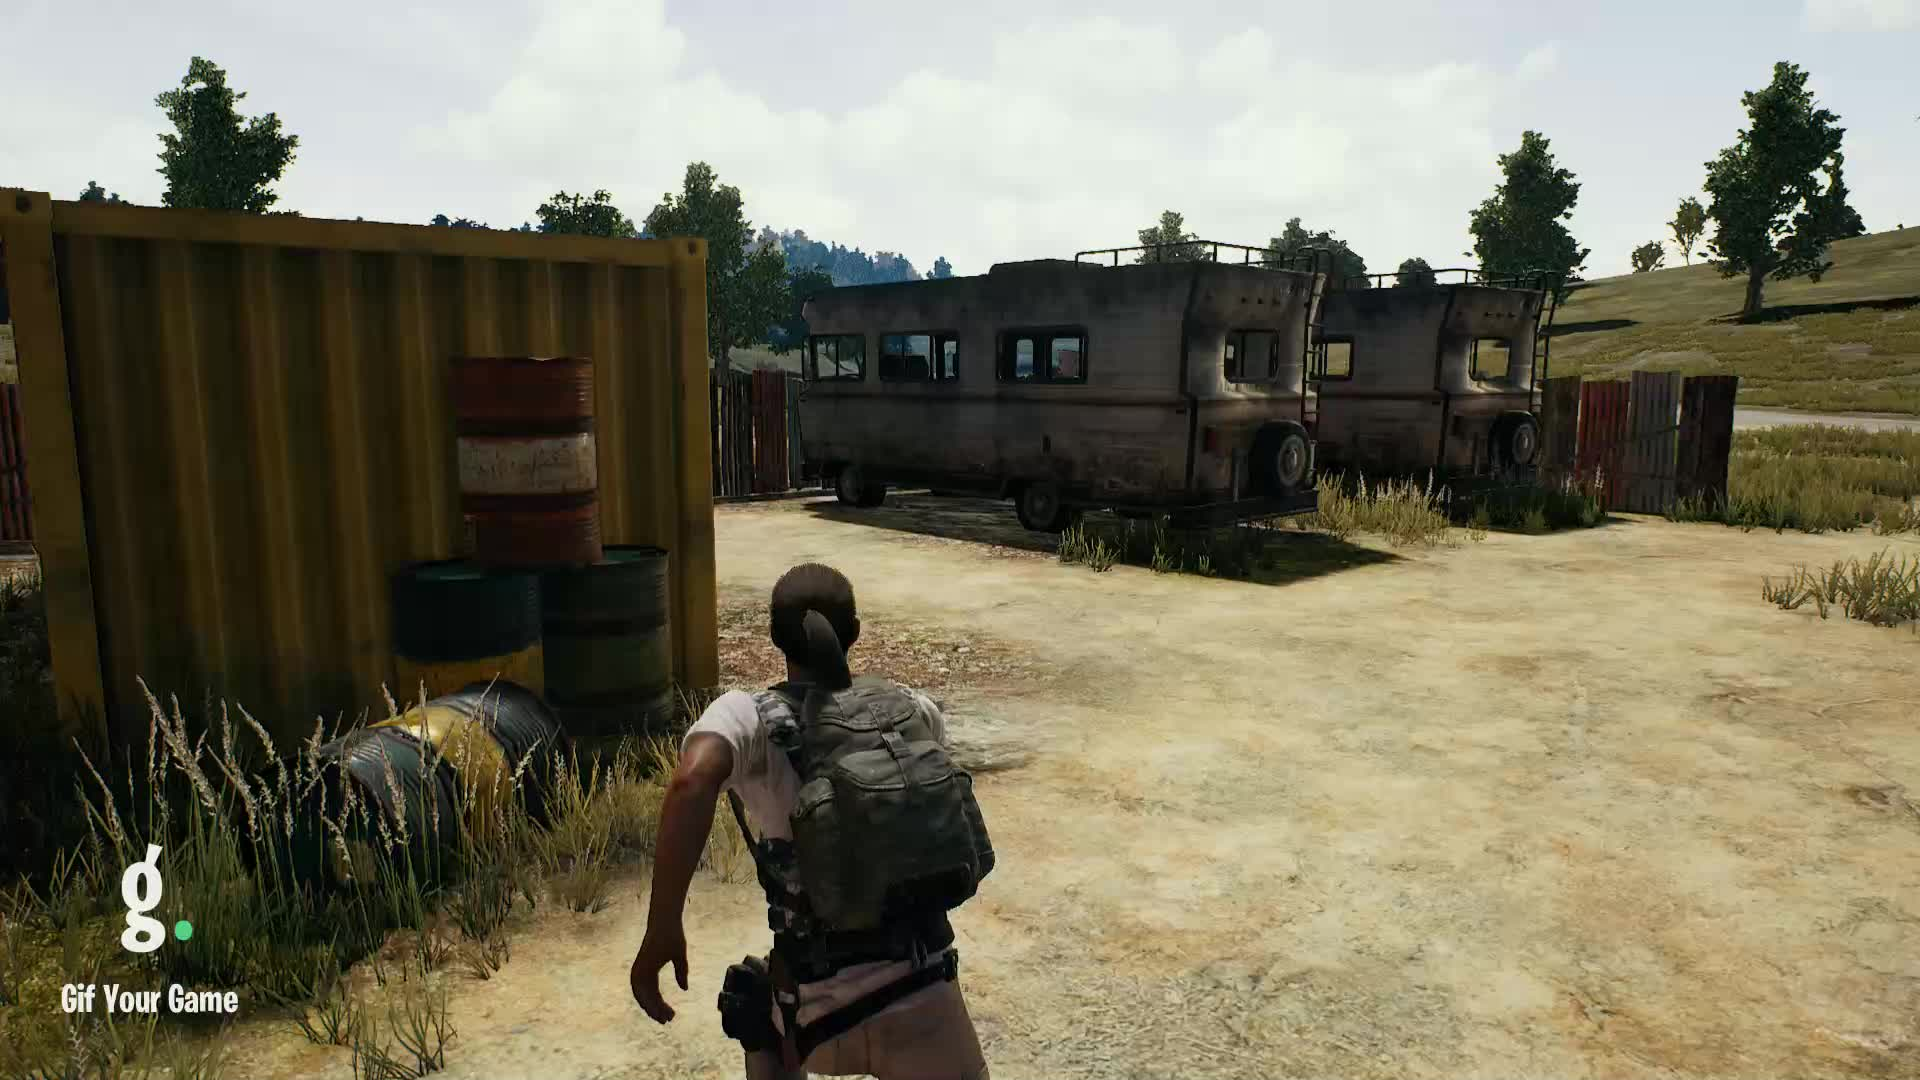 Gif Your Game, GifYourGame, PUBATTLEGROUNDS, pubg, gifyourgame user clip 2 GIFs